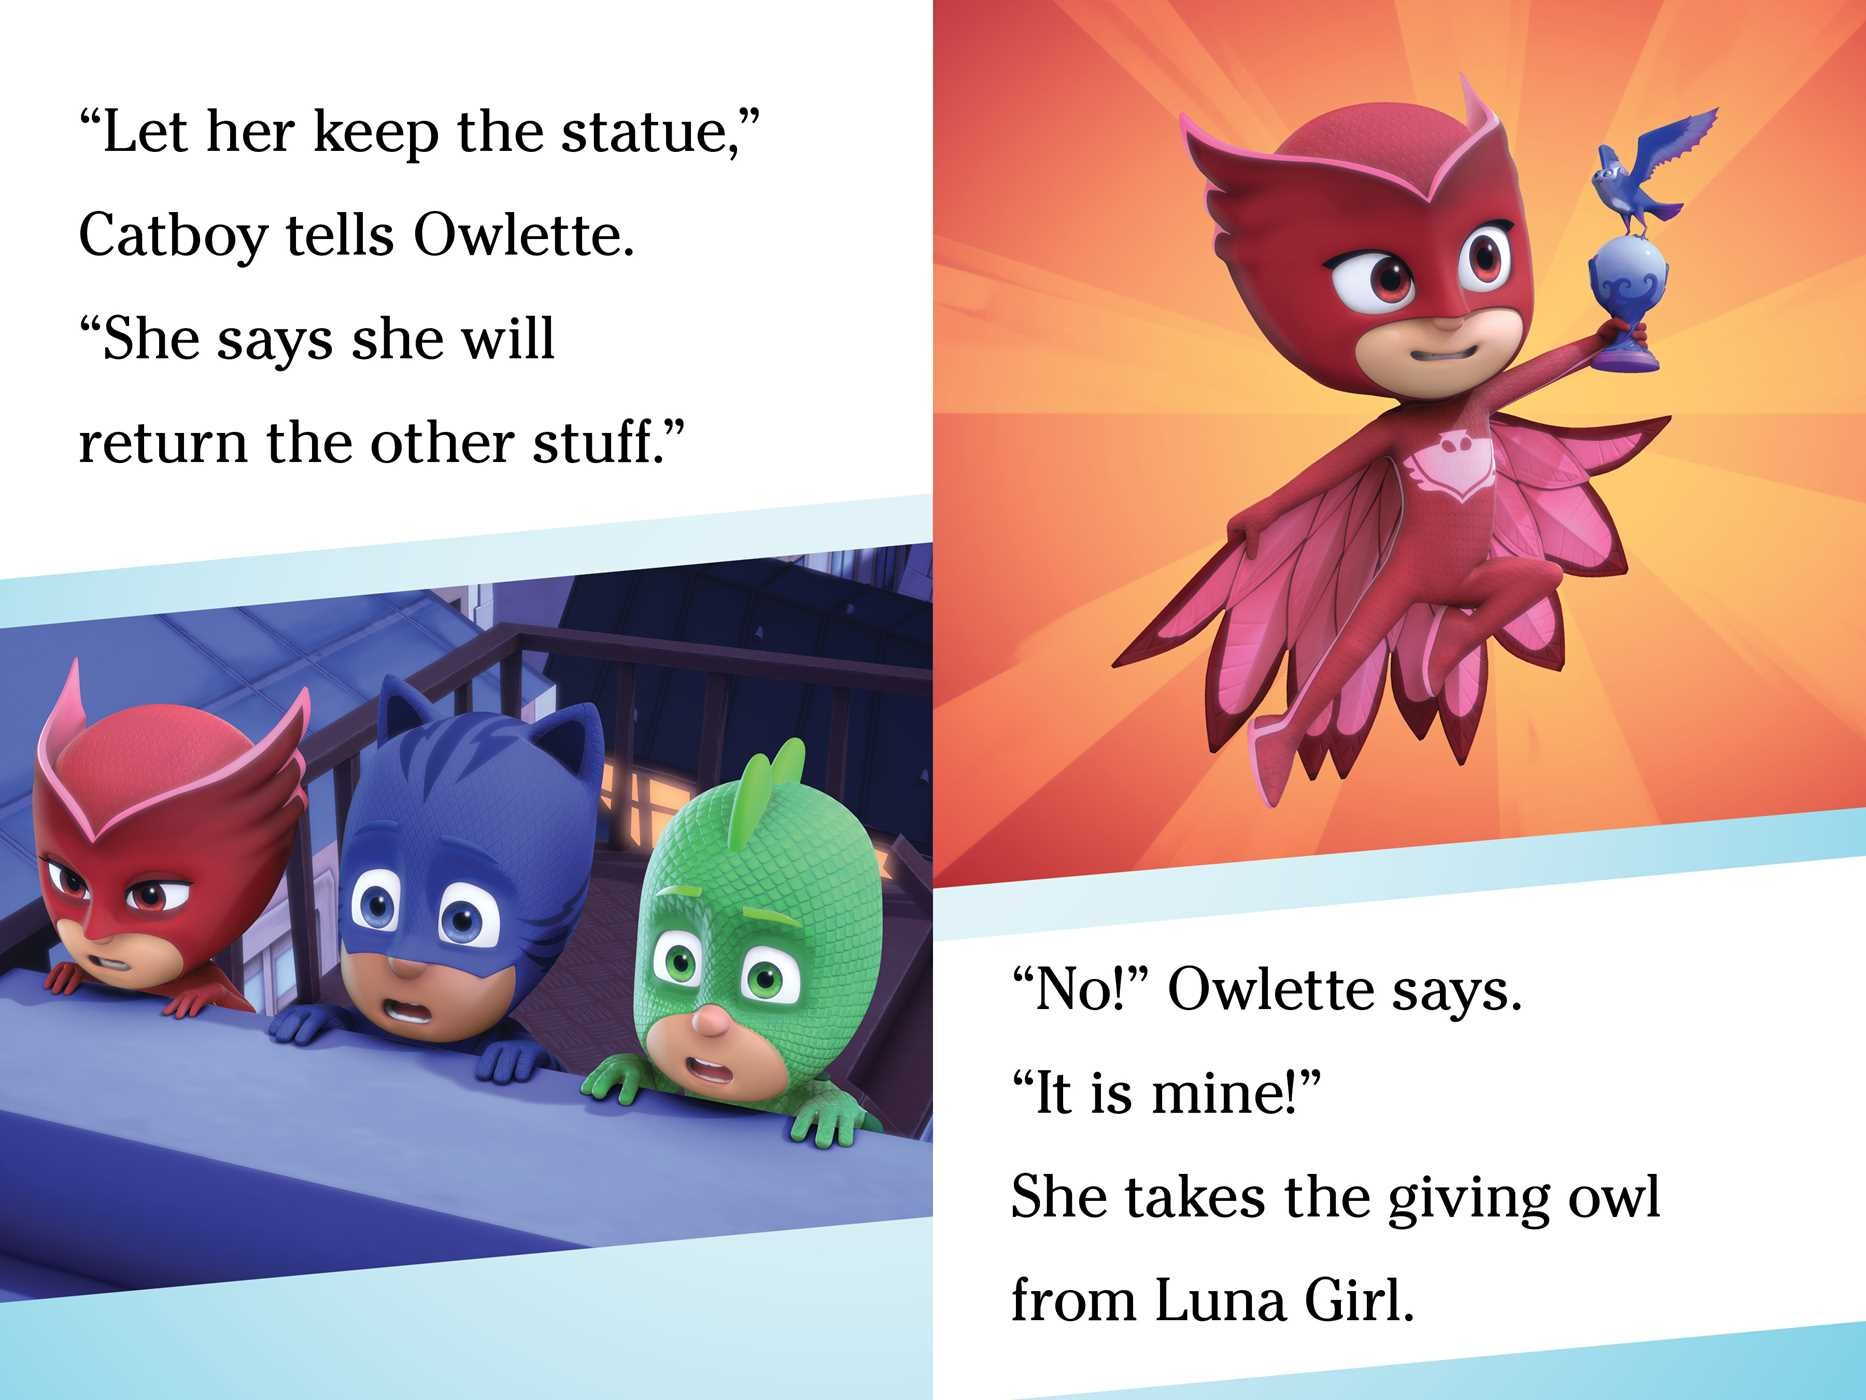 Owlette and the giving owl 9781534403758.in04